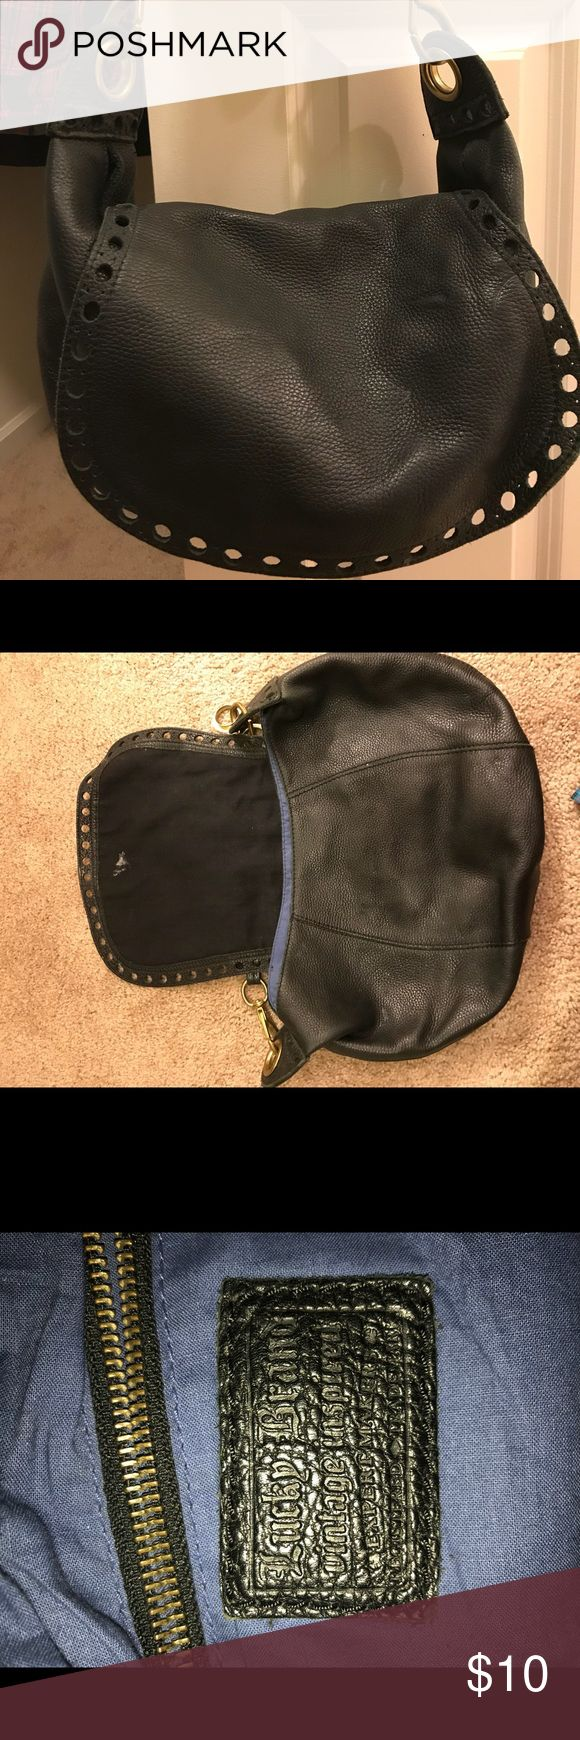 Lucky brand purse I've had it laying in my closet forever, it's a lucky brand vintage purse. It has a stain in the opening flap but other then that it's in great condition! Lucky Brand Bags Shoulder Bags